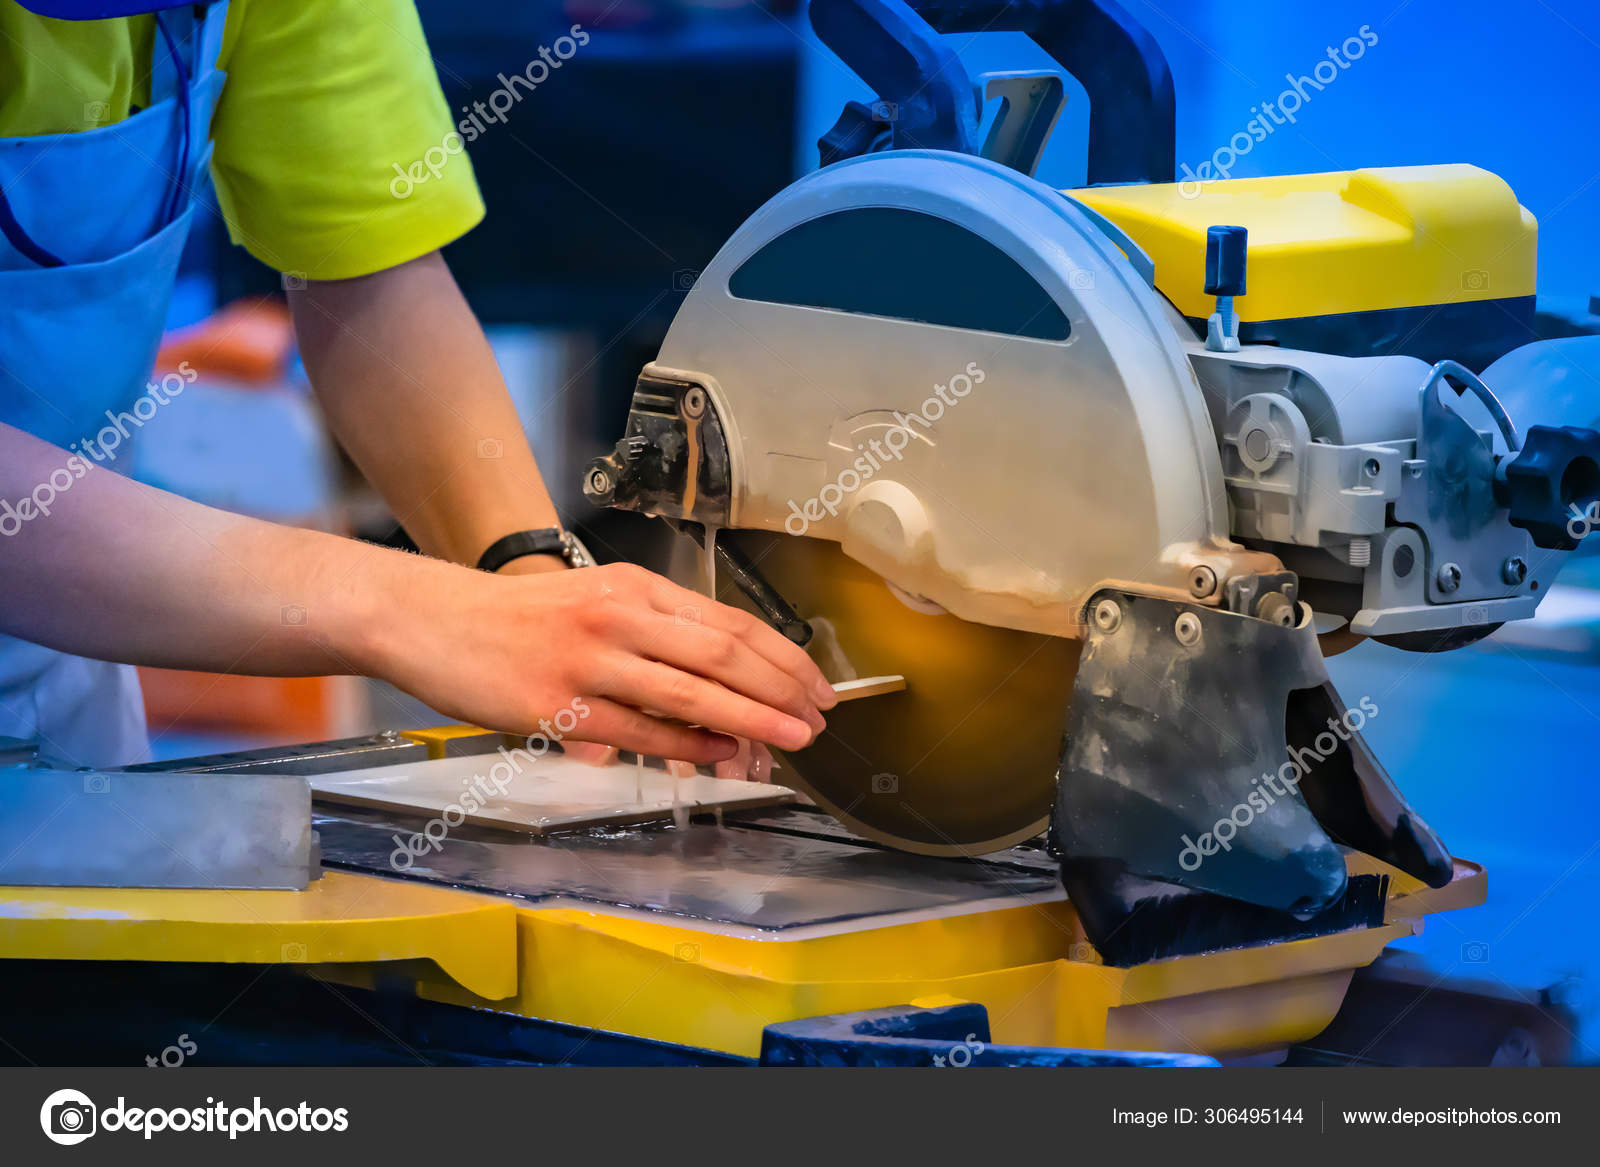 work sawing tile work on a circular saw cutting stone and tiles stone processing equipment workshop with circular saw stock photo image by c grinphoto 306495144